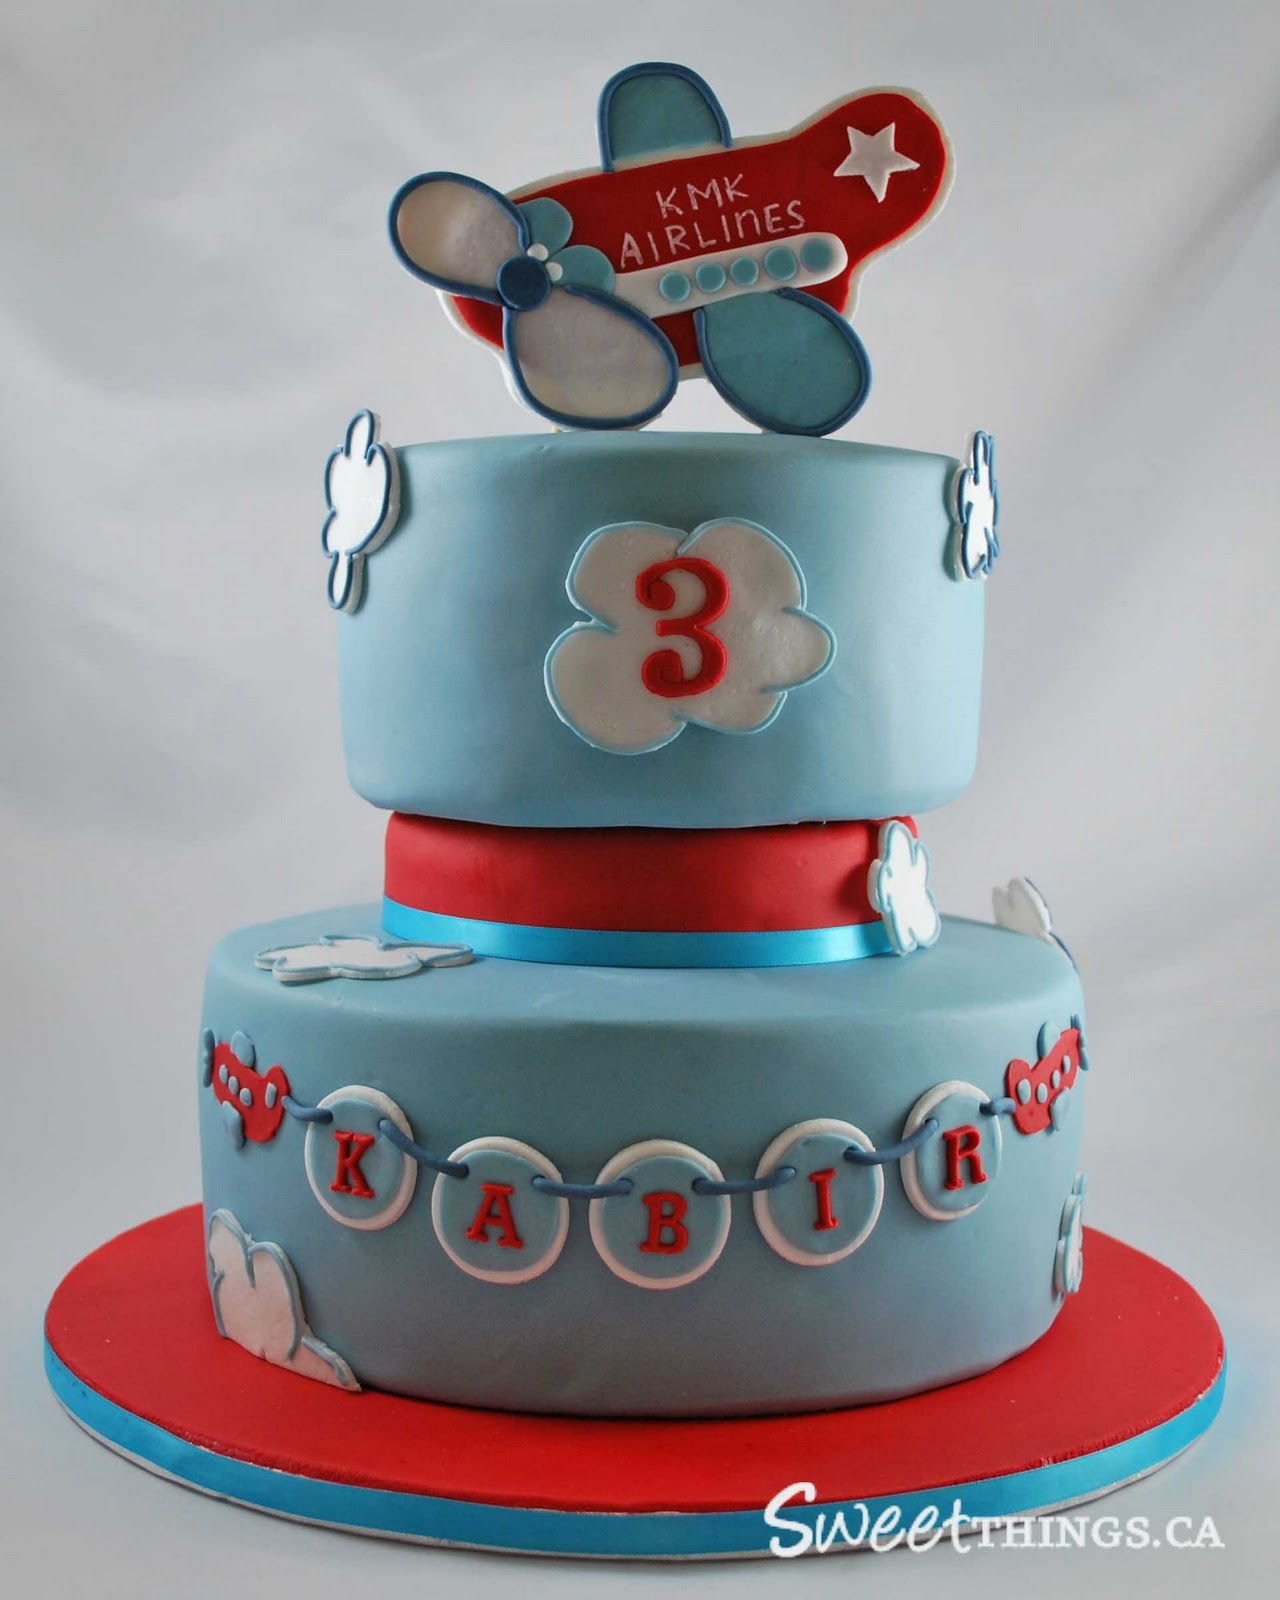 Images Of Plane Cake : SweetThings: 3rd Birthday Cake: Cute Airplane Cake